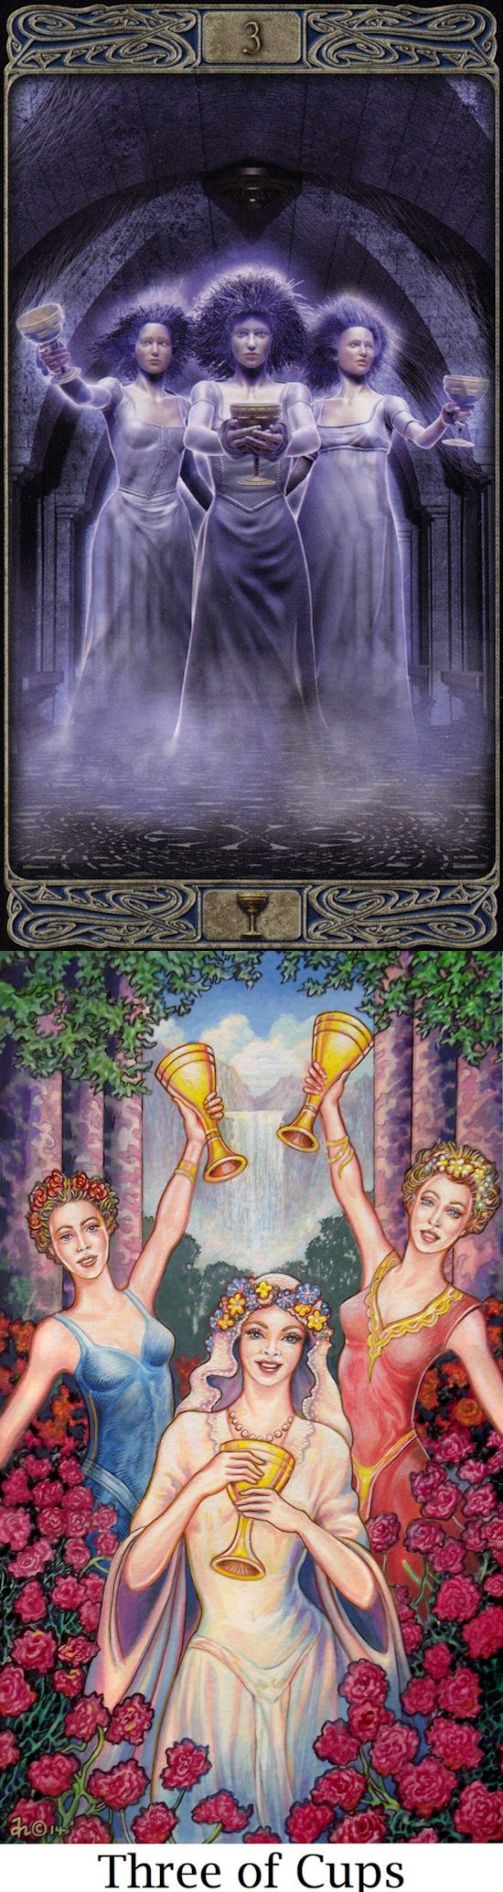 Three of Cups: friendship and herd mentality (reverse). Ghost Tarot deck and Sacredisle Tarot deck: free tarot reading predictions, tarot card reading in hindi free online vs tarotjournaling. Best 2017 cartomancy decks and cartomancy. #androidapplication #iosgame #ghost